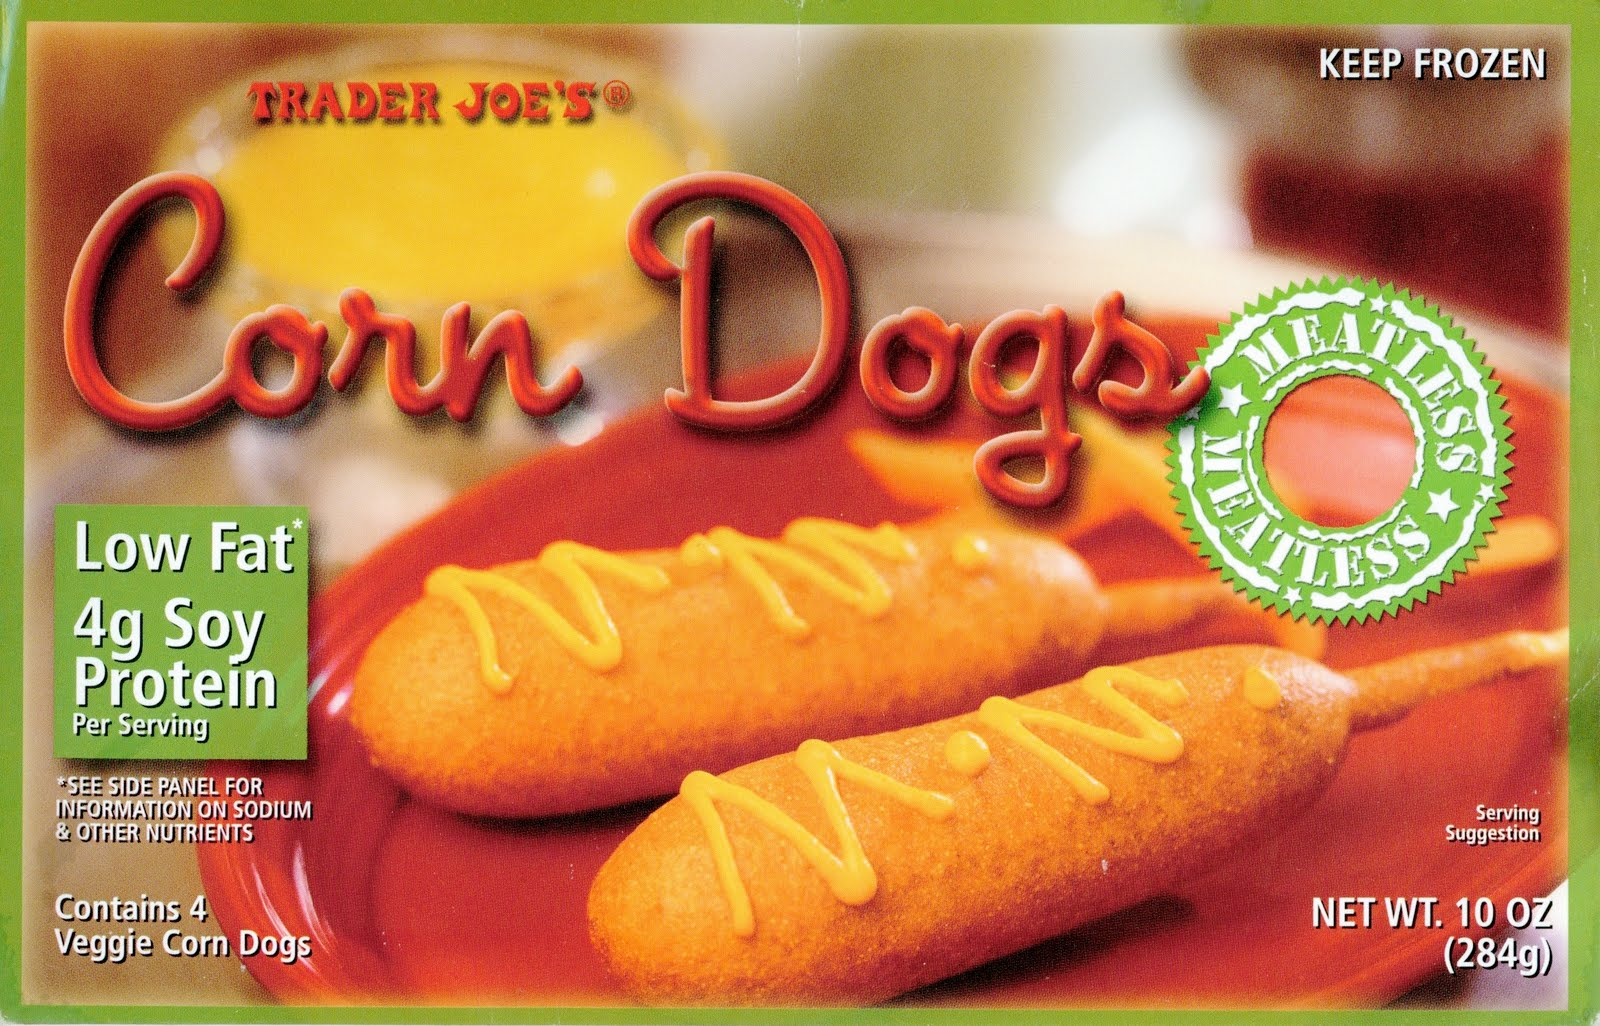 Veggieboards Hot Dogs